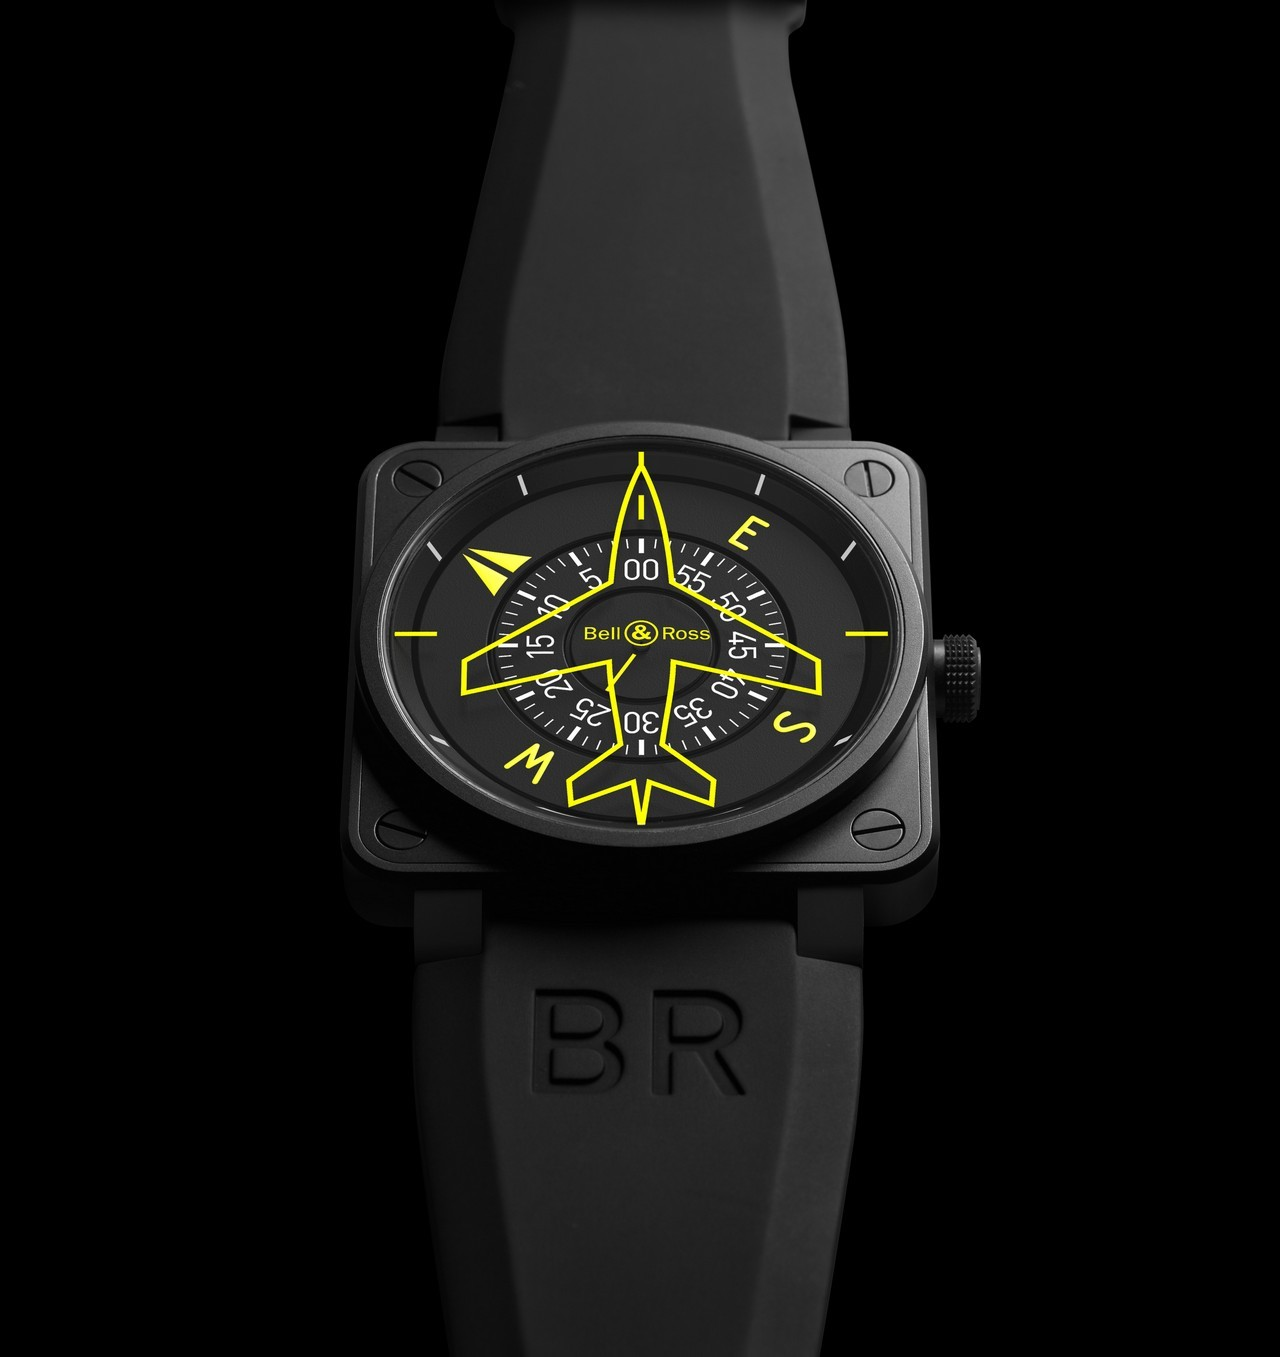 baselworld-2013-bell-ross-collezione-aviaton-br01-heading-indicator_0-100_1